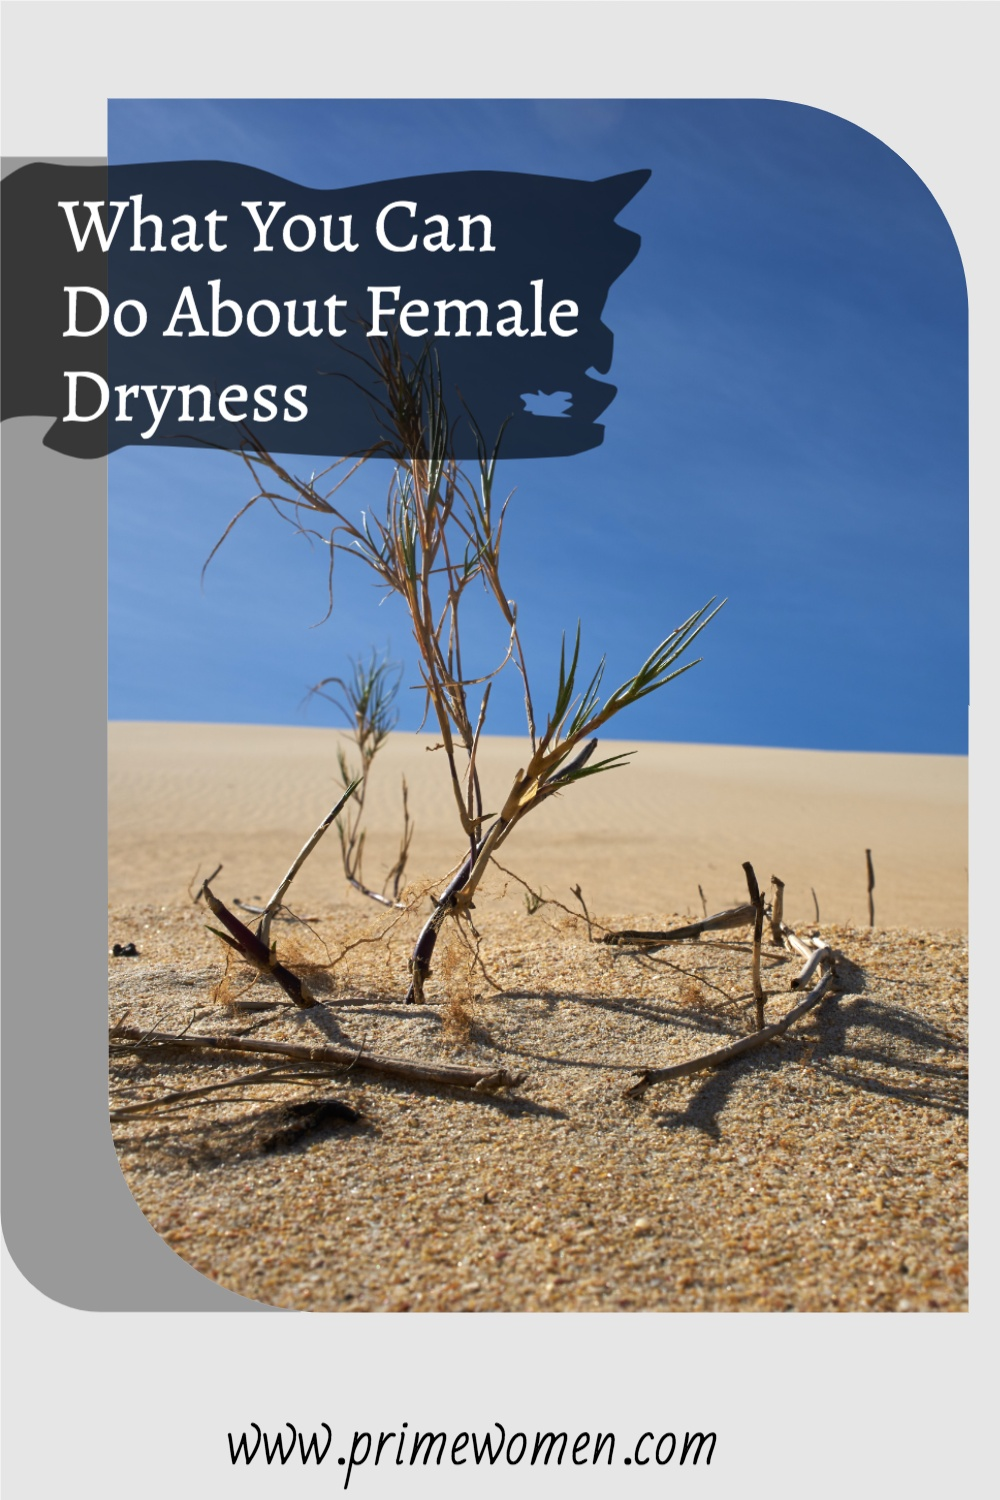 What you can do about female dryness